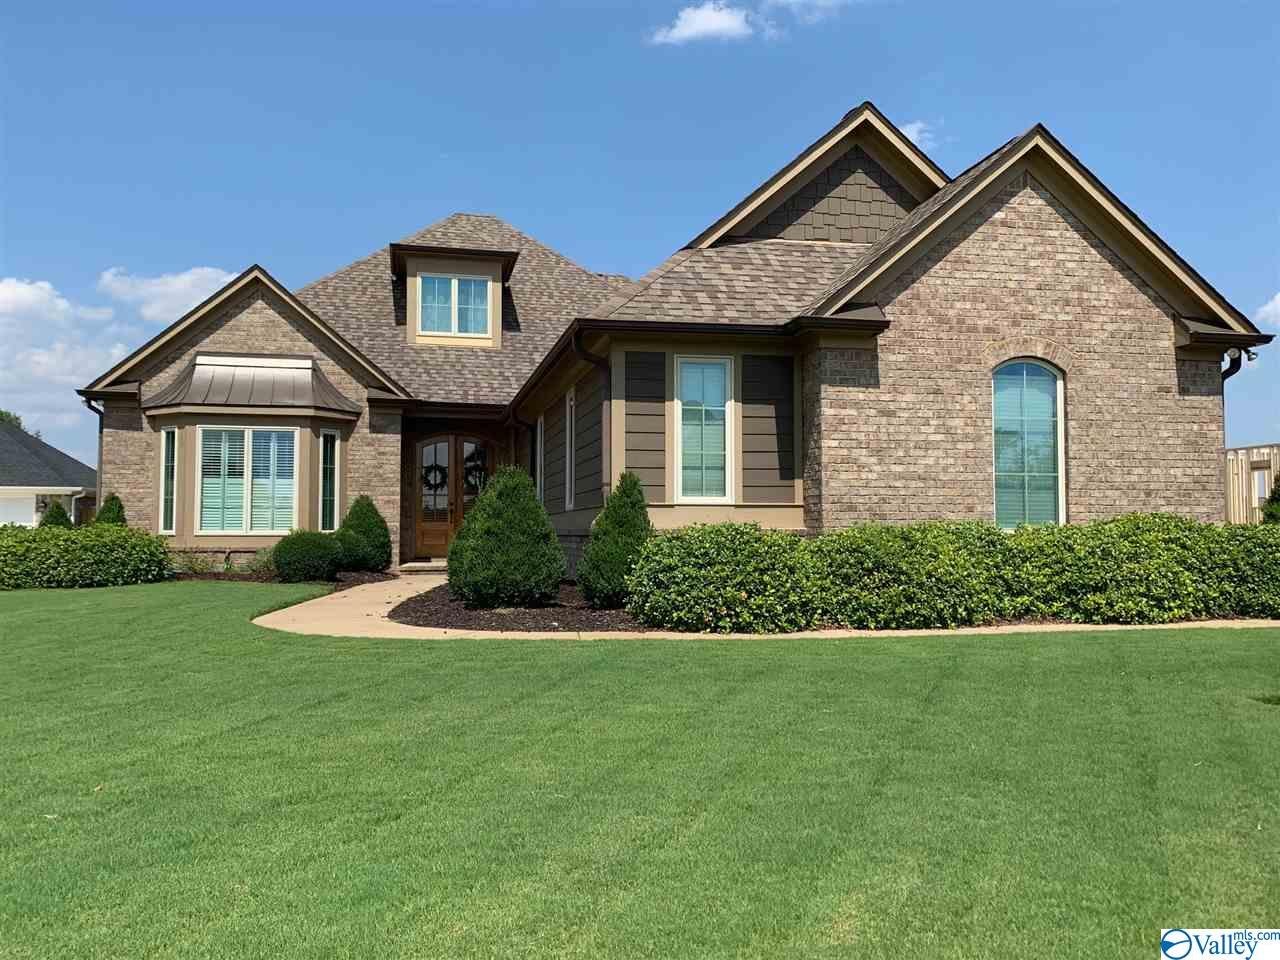 24290 BEACON CIRCLE, ATHENS, AL 35613